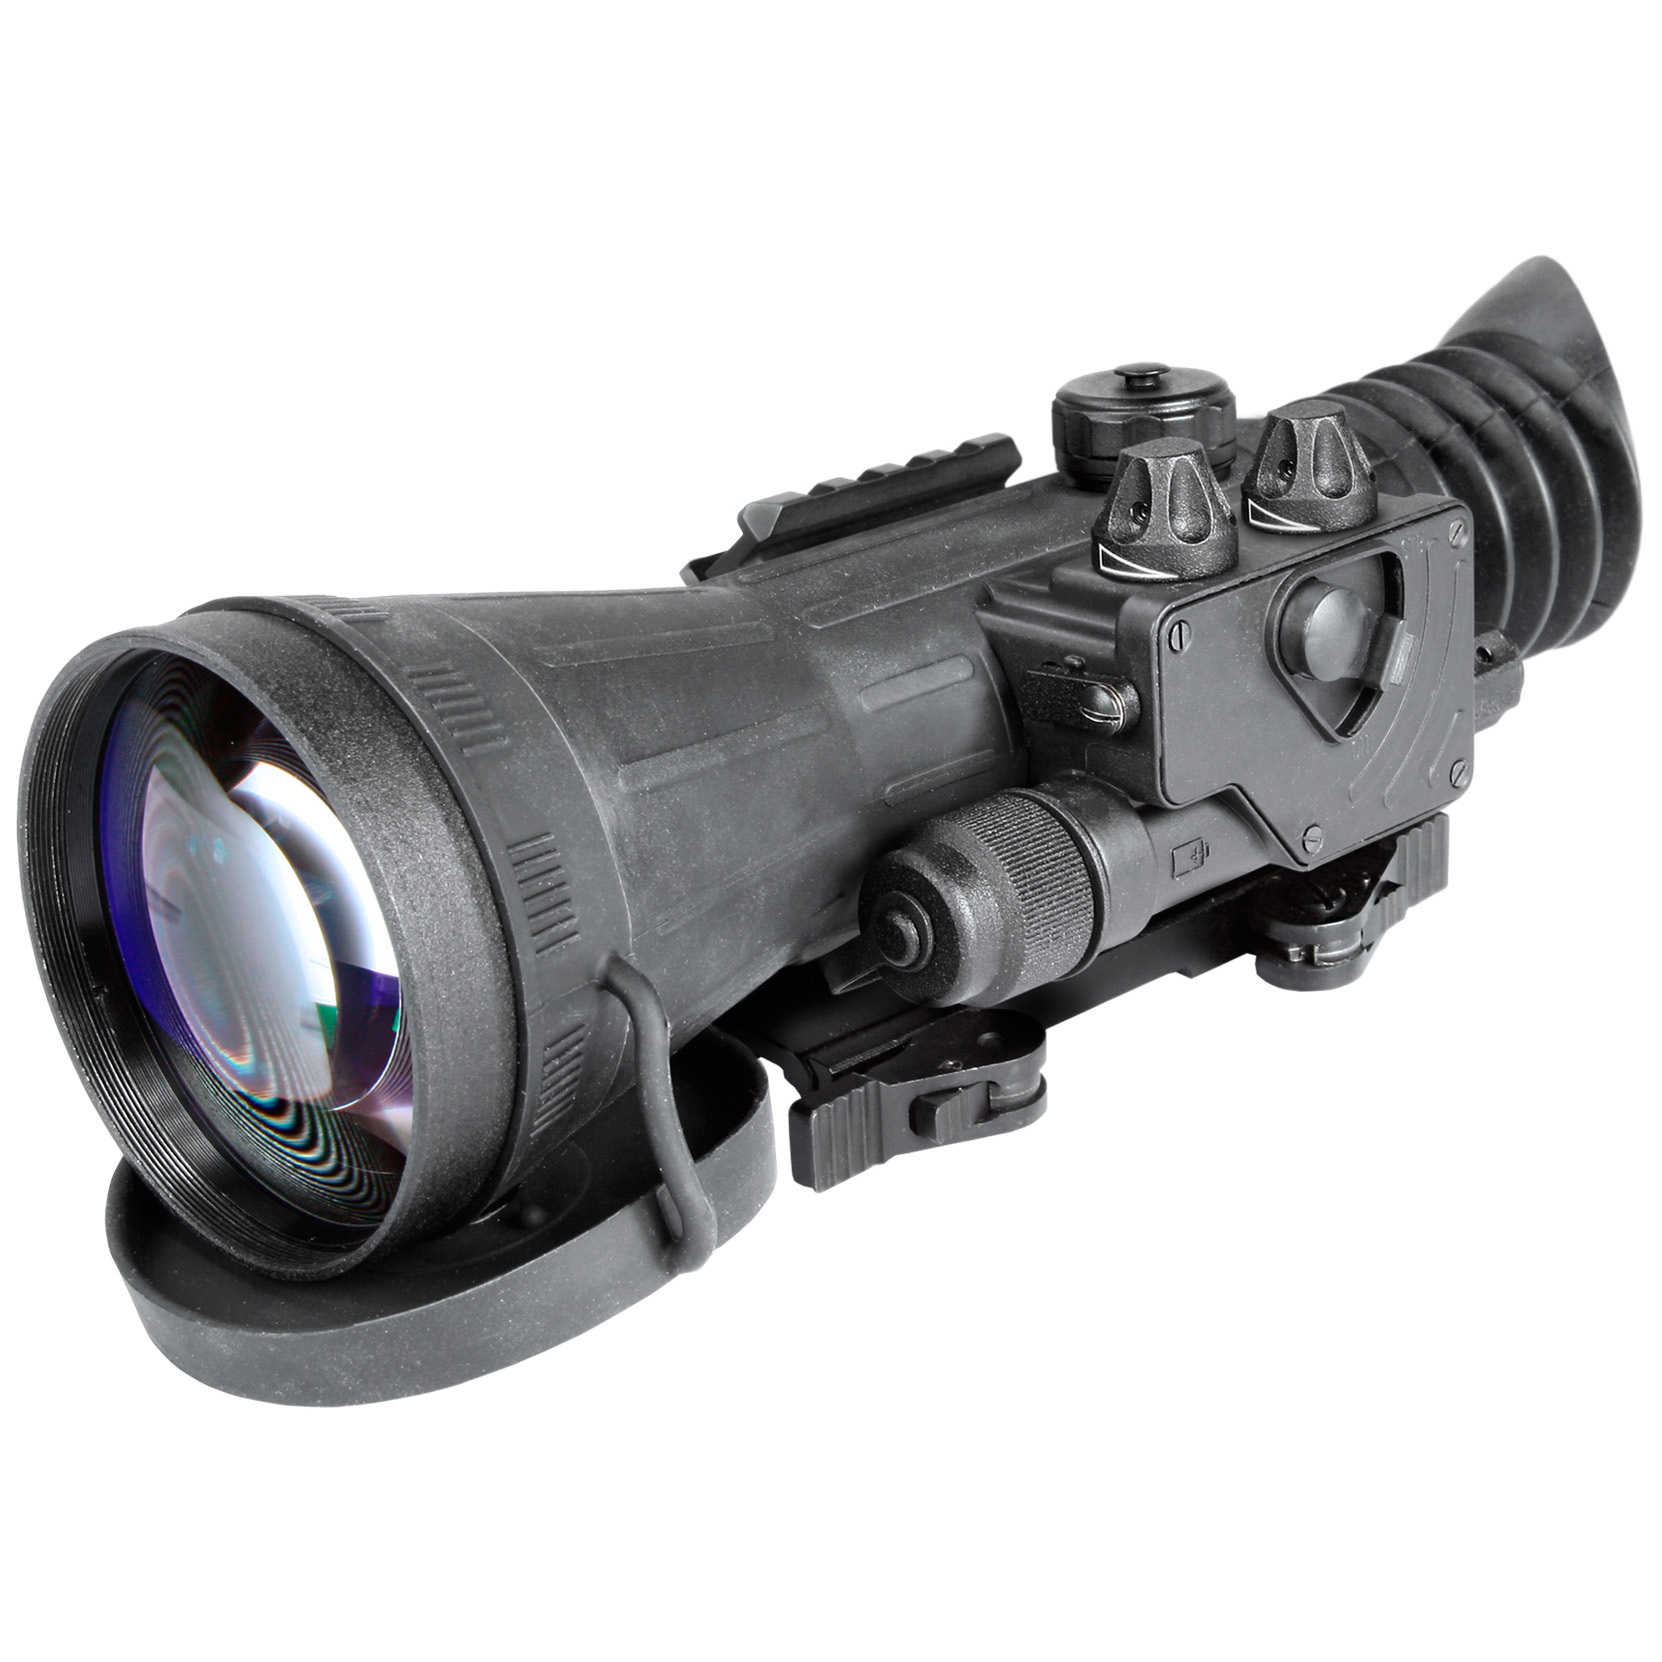 "Armasight Vulcan 4.5X Gen 3 Bravo MG Night Vision Rifle Scope. Small in size but huge in performance, this Vulcan 4.5X Gen 3 Bravo MG delivers stunning night imaging without unbalancing your rifle. It weighs just 33 ozs., but still packs a high-resolution image tube, multi-coated all-glass lenses and an internally adjustable fine reticle that makes precise shot placement incredibly easy.Mount it to your rifle's Weaver or Picatinny rail in seconds. No tools. No time wasted. Then let the Vulcan do its thing, pulling your target out of the shadows with a Gen 3 Bravo MG image tube and serving it up in stunning clarity. Ideal for predator hunters, tactical marksmen and security personnel. Features:Wide array of IIT configurations 4.5X magnification Shockproof, all-glass IR transmission multi-coated optics Bright light cut-off Illuminated reticle with brightness adjustment Variable gain control (optional) Wireless remote control Detachable long-range infrared illuminator Waterproof design Low battery indicator Quick-release mount Mounts to standard Weaver rails Runs on 1 CR123A battery (included) or 1 AA battery (not included) Includes lens cap, carrying case, battery adapter, and lens tissue Measures 3.9 x 3.2 x 8.6""l.Weighs 2.1 lbs. Specifications:IIT generation: Gen 3 Bravo MG Resolution: 57-64 lp / mm Exit pupil diameter: 7mm Eye relief: 45mm Windage and elevation adjustment: 1/2"" MOA Lens system: F1.54, F108 mm 9 degrees F.O.V. Diopter adjustment: -4 to +4 Controls: direct Battery life: 50 hours (CR123A) or 46 hours (AA) Operating temperature: -40 degrees to 122 degrees F. Storage temperature: -50 degrees to 158 degrees F. - $3,874.99"